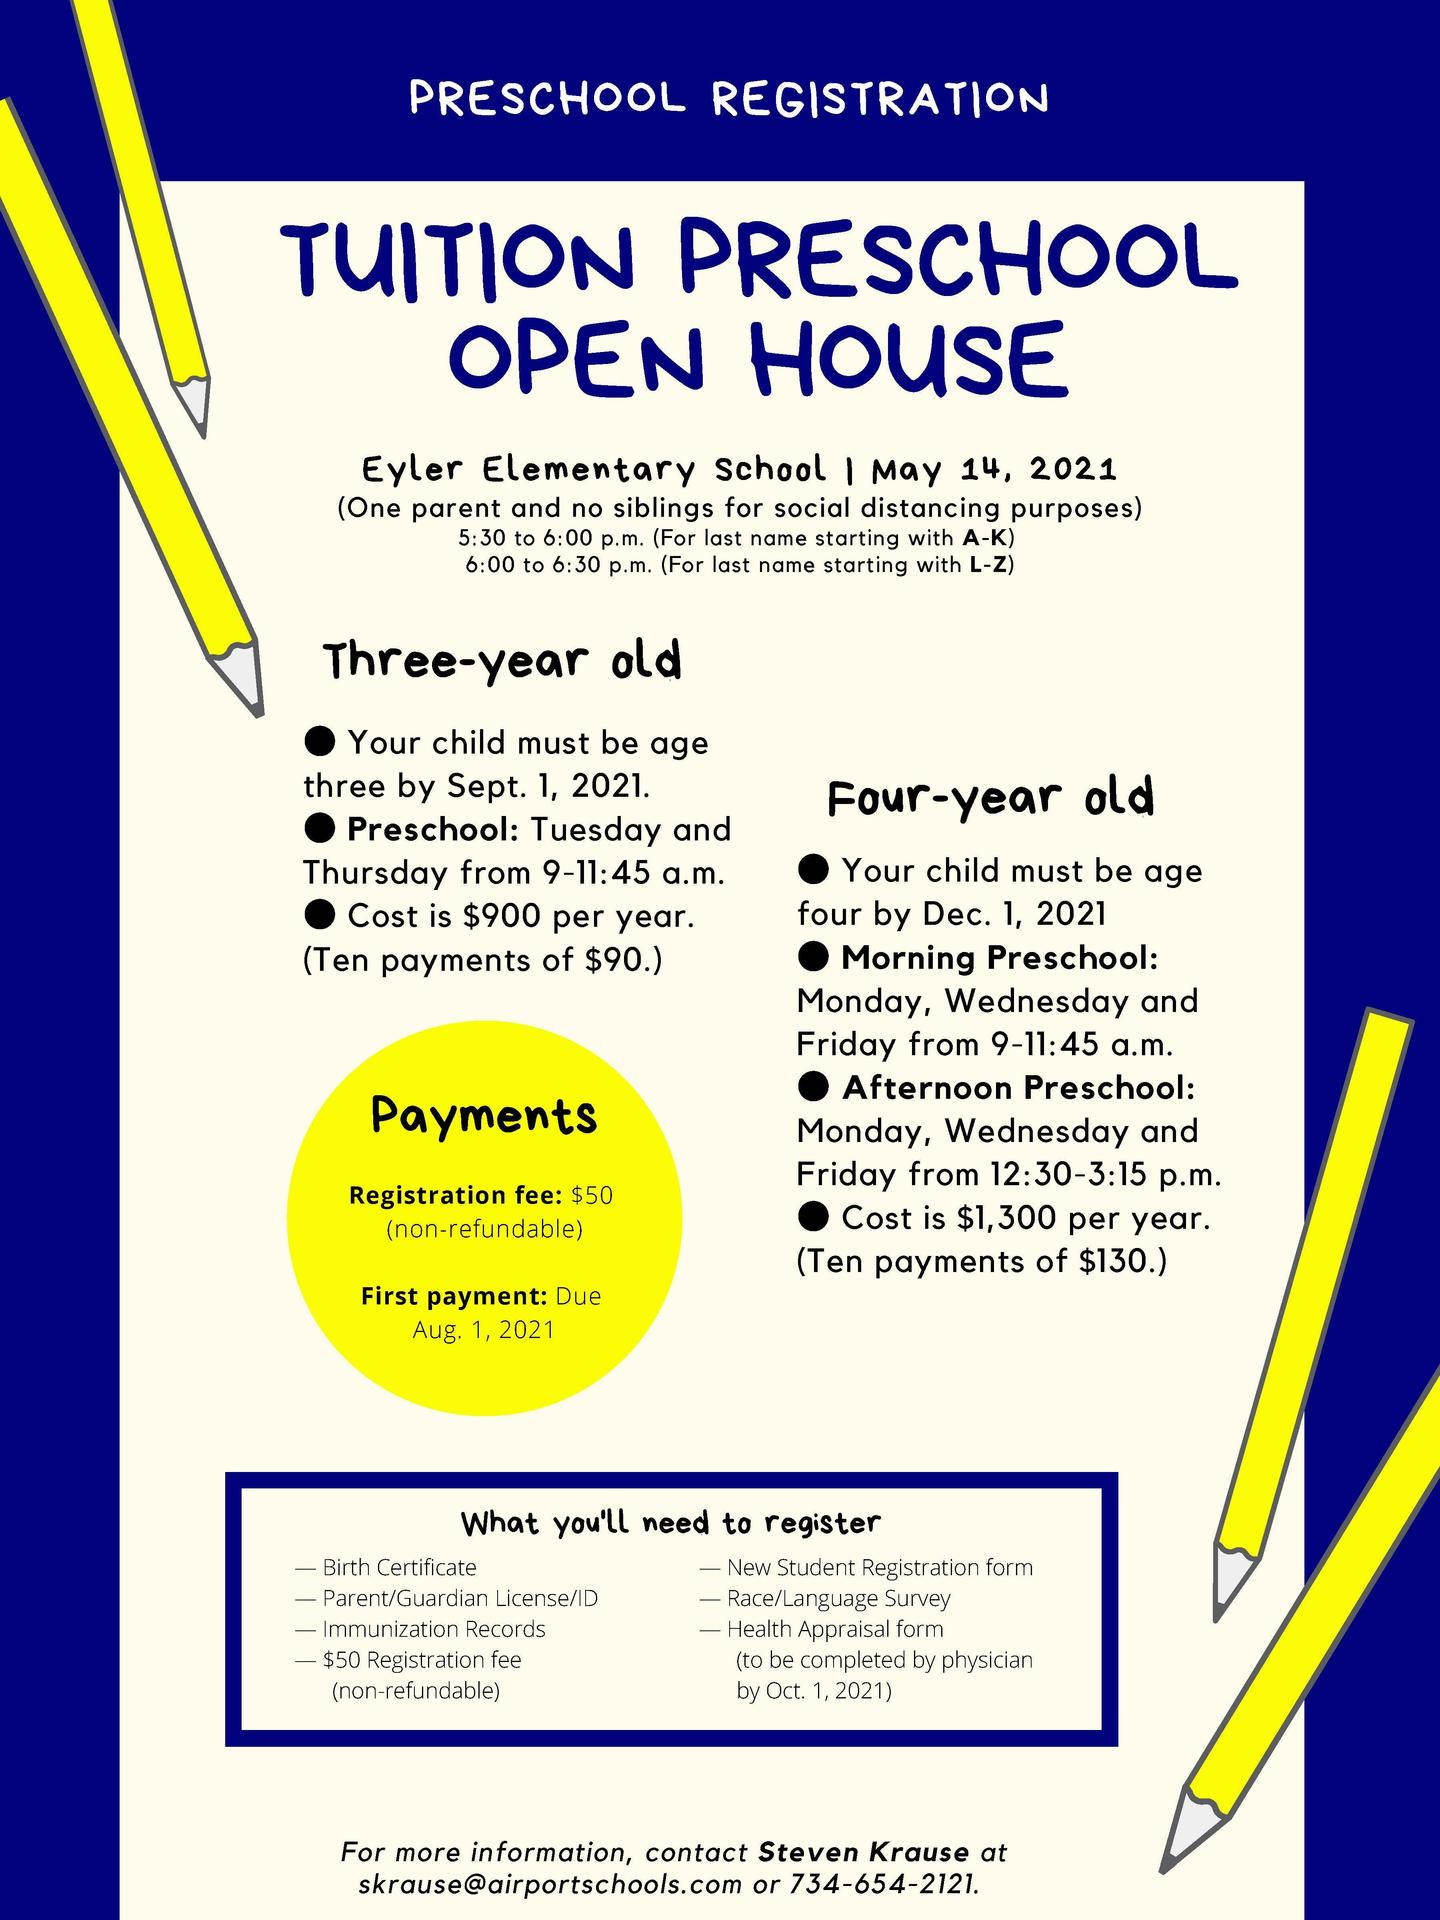 Tuition Preschool Flier